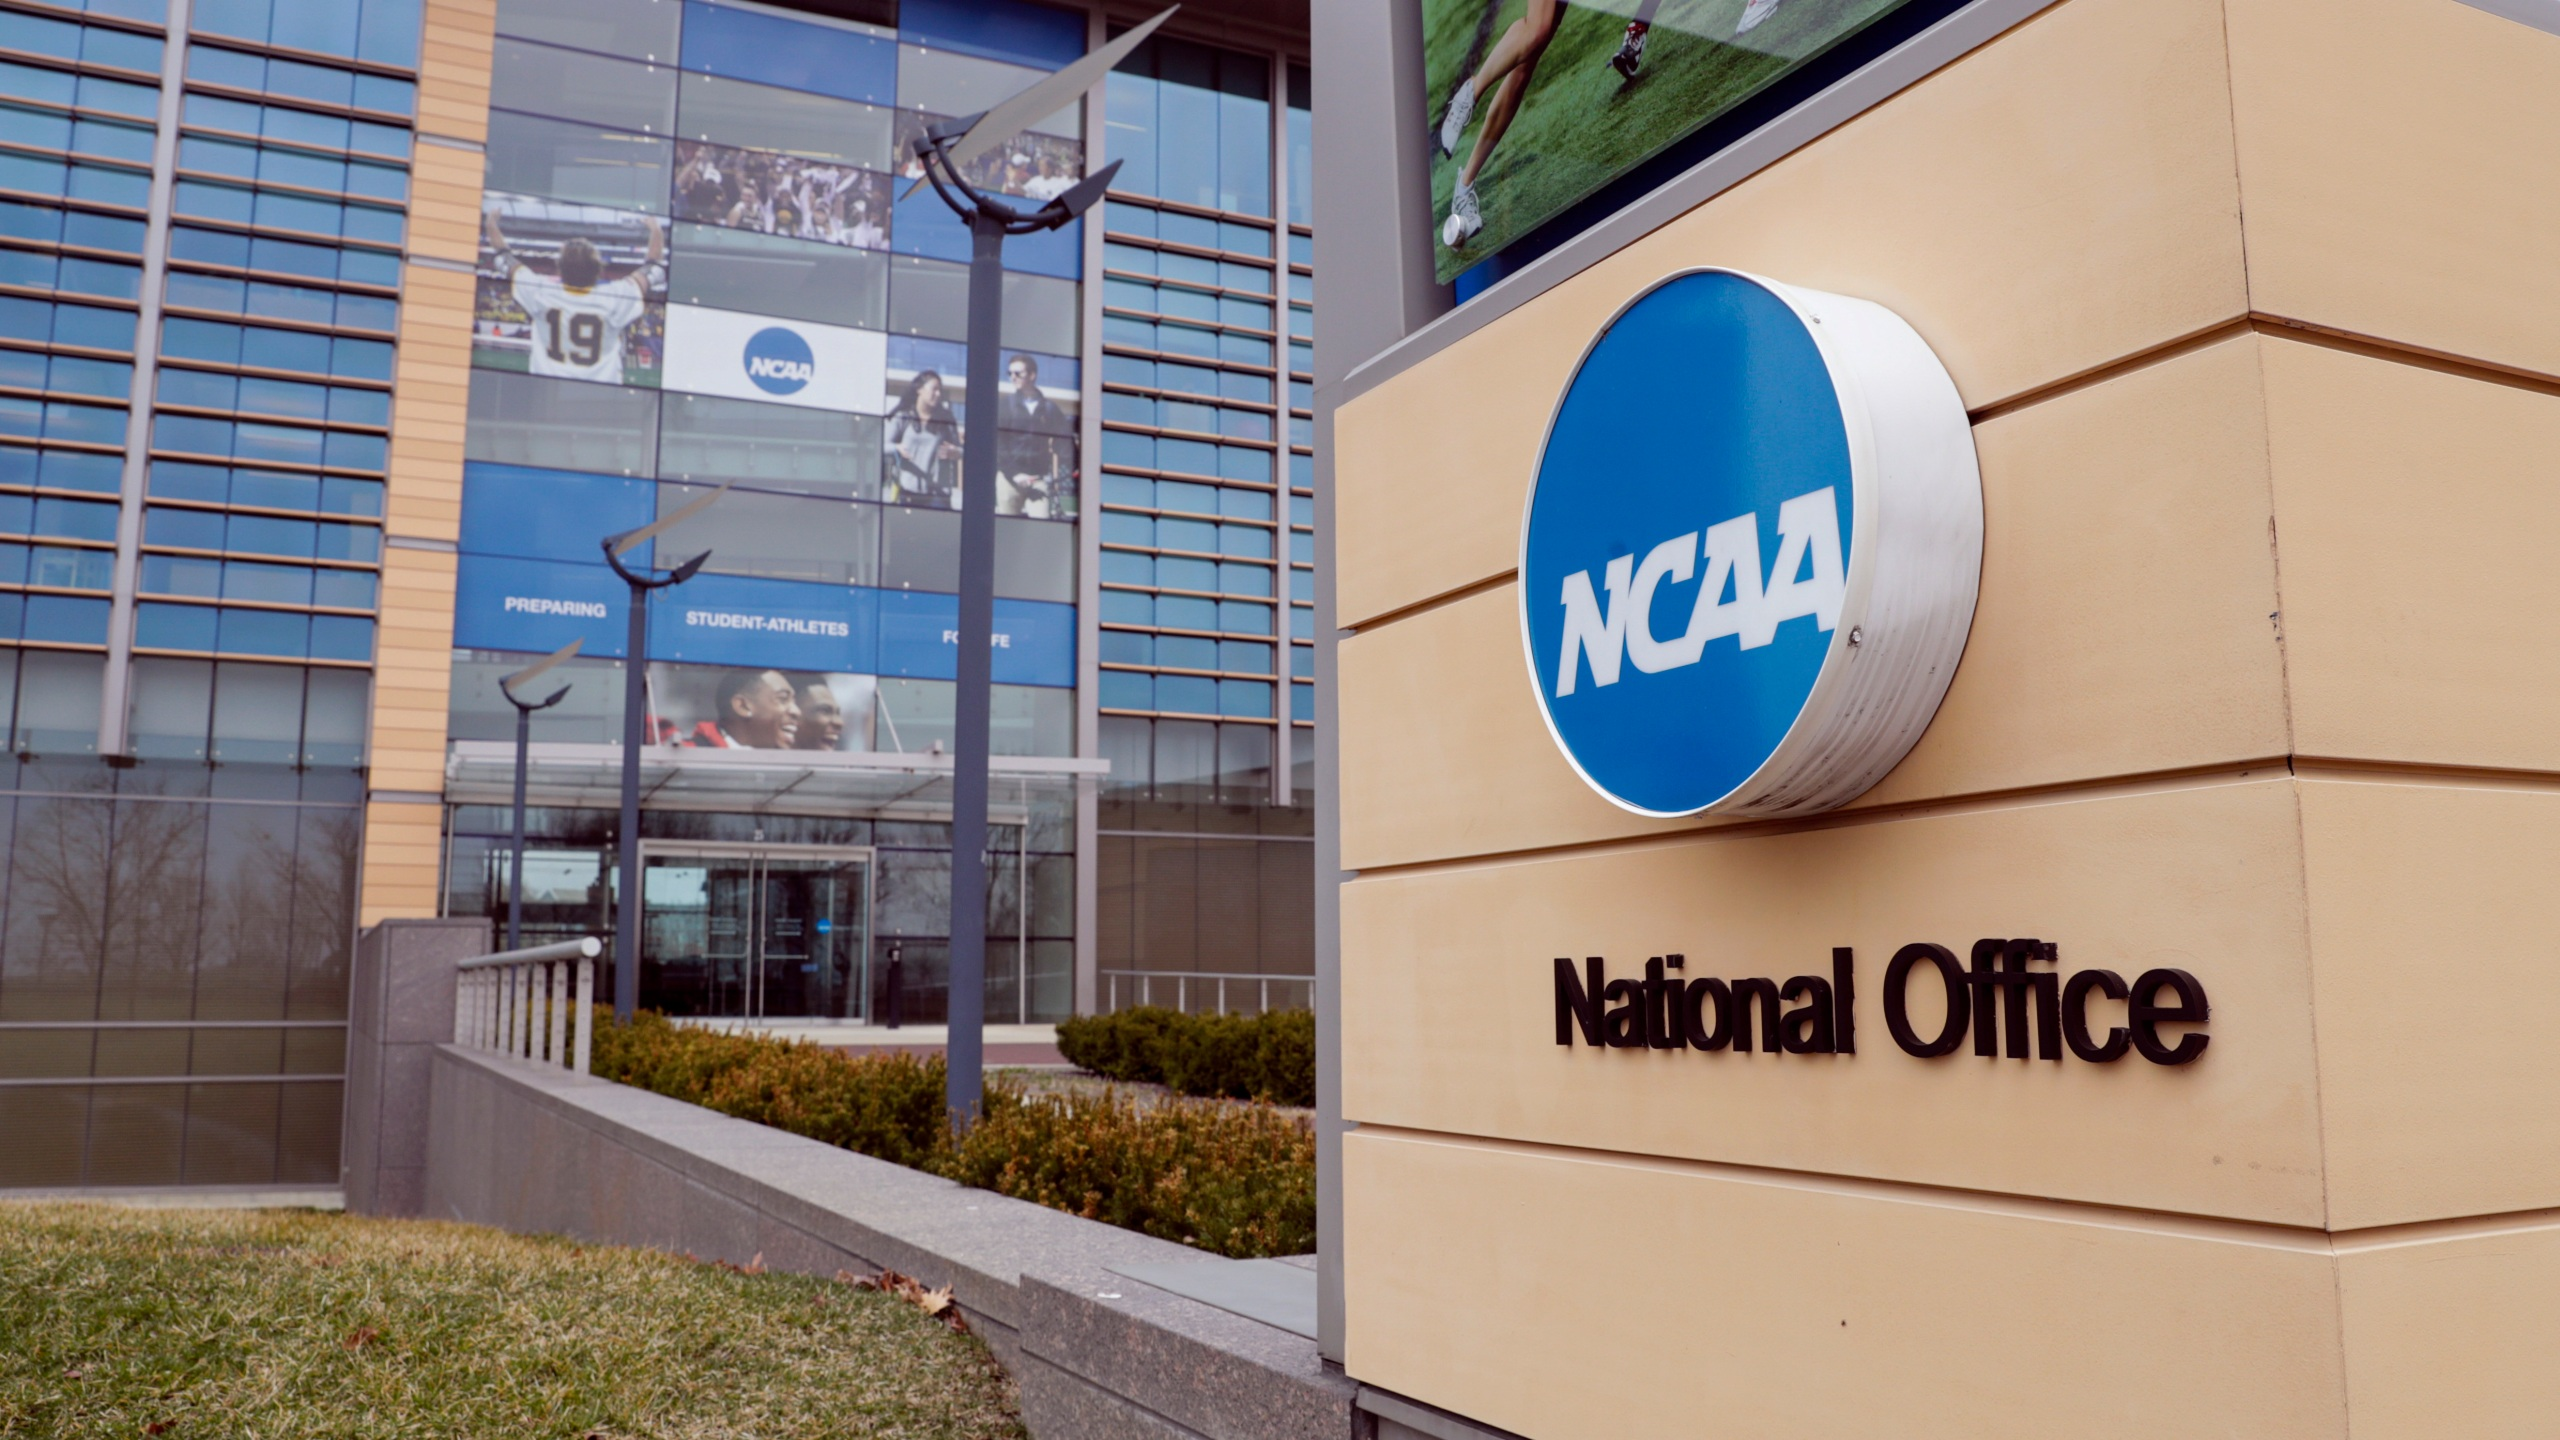 The national office of the NCAA in Indianapolis (AP Photo/Michael Conroy, File)